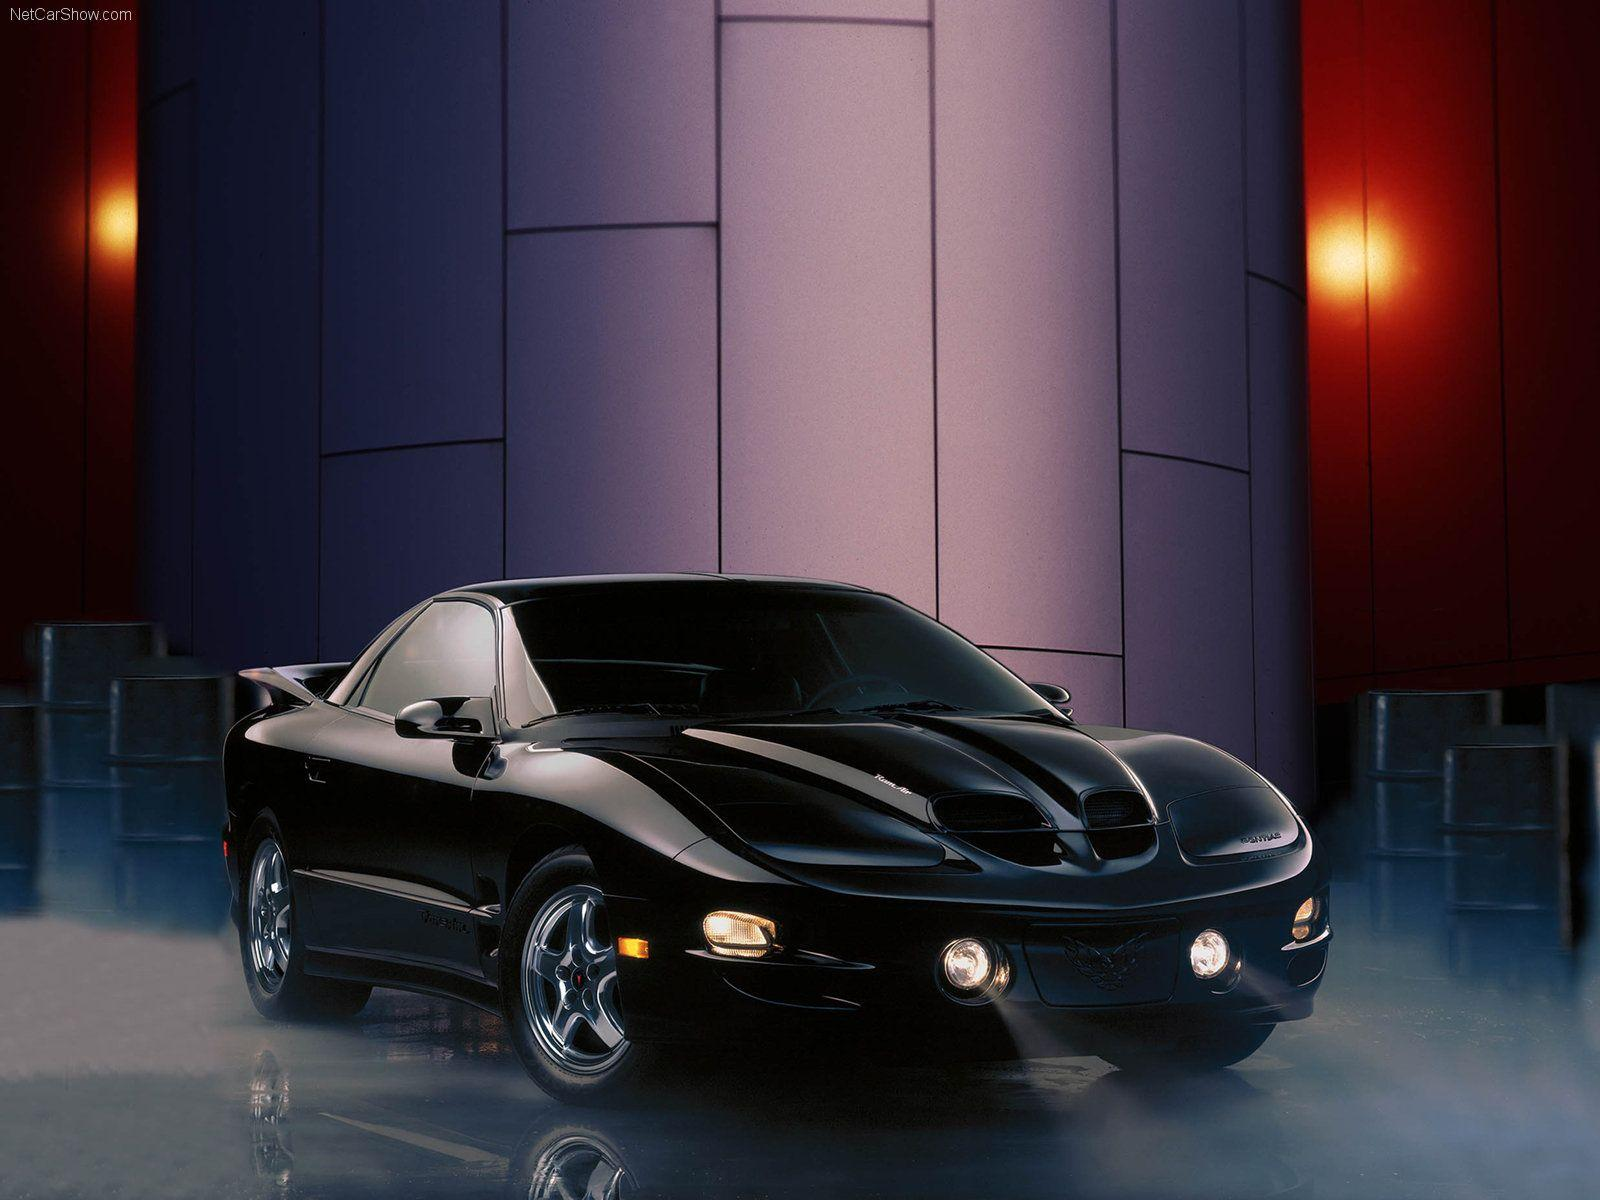 Pontiac Firebird Wallpapers Wallpaper Cave